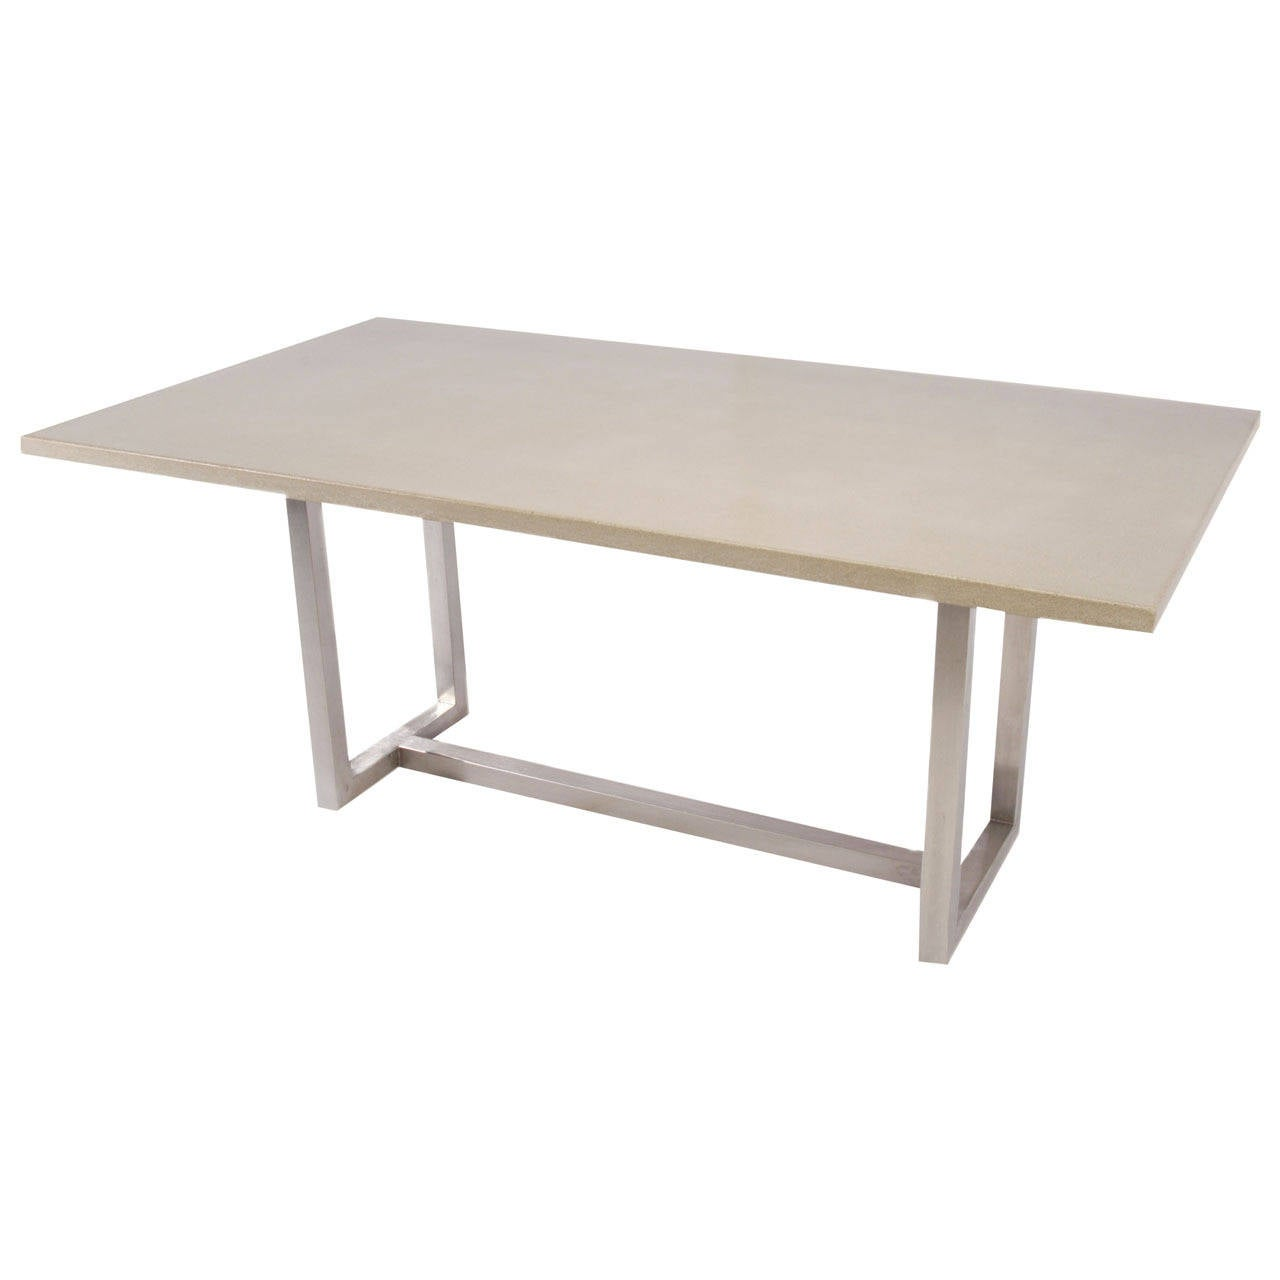 James de Wulf Vue Dining Table, Concrete and Brushed Stainless Steel